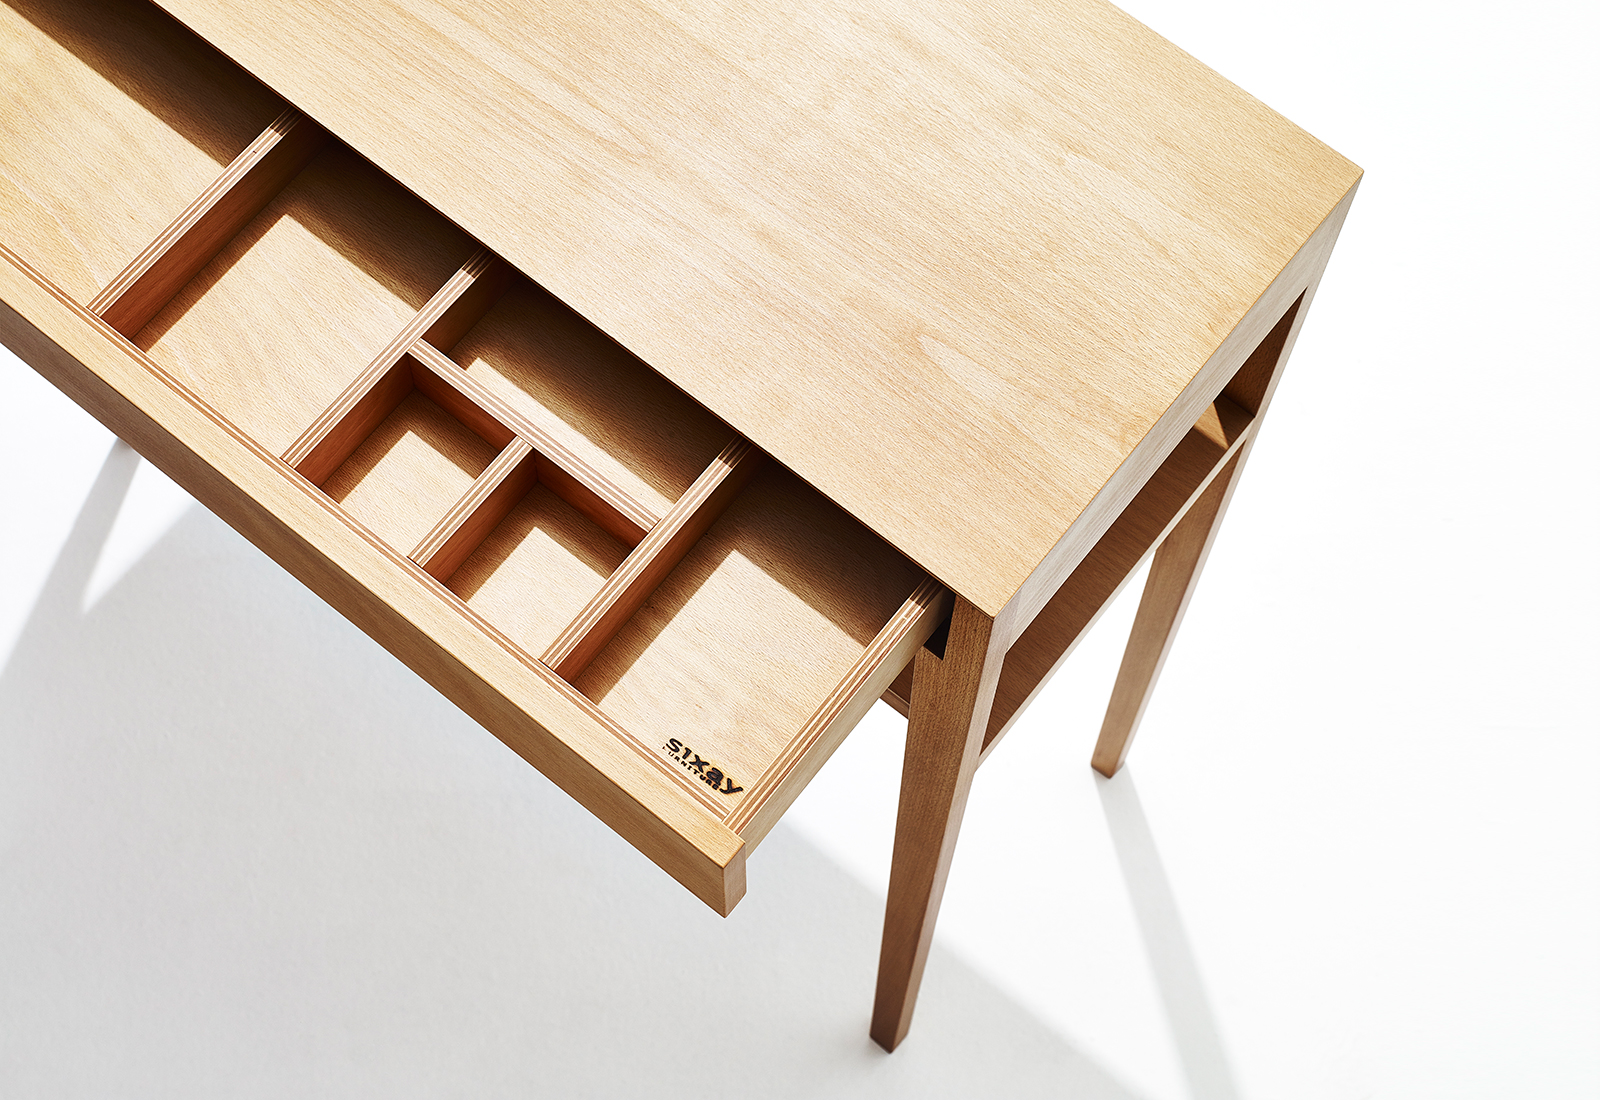 THEO UP console table